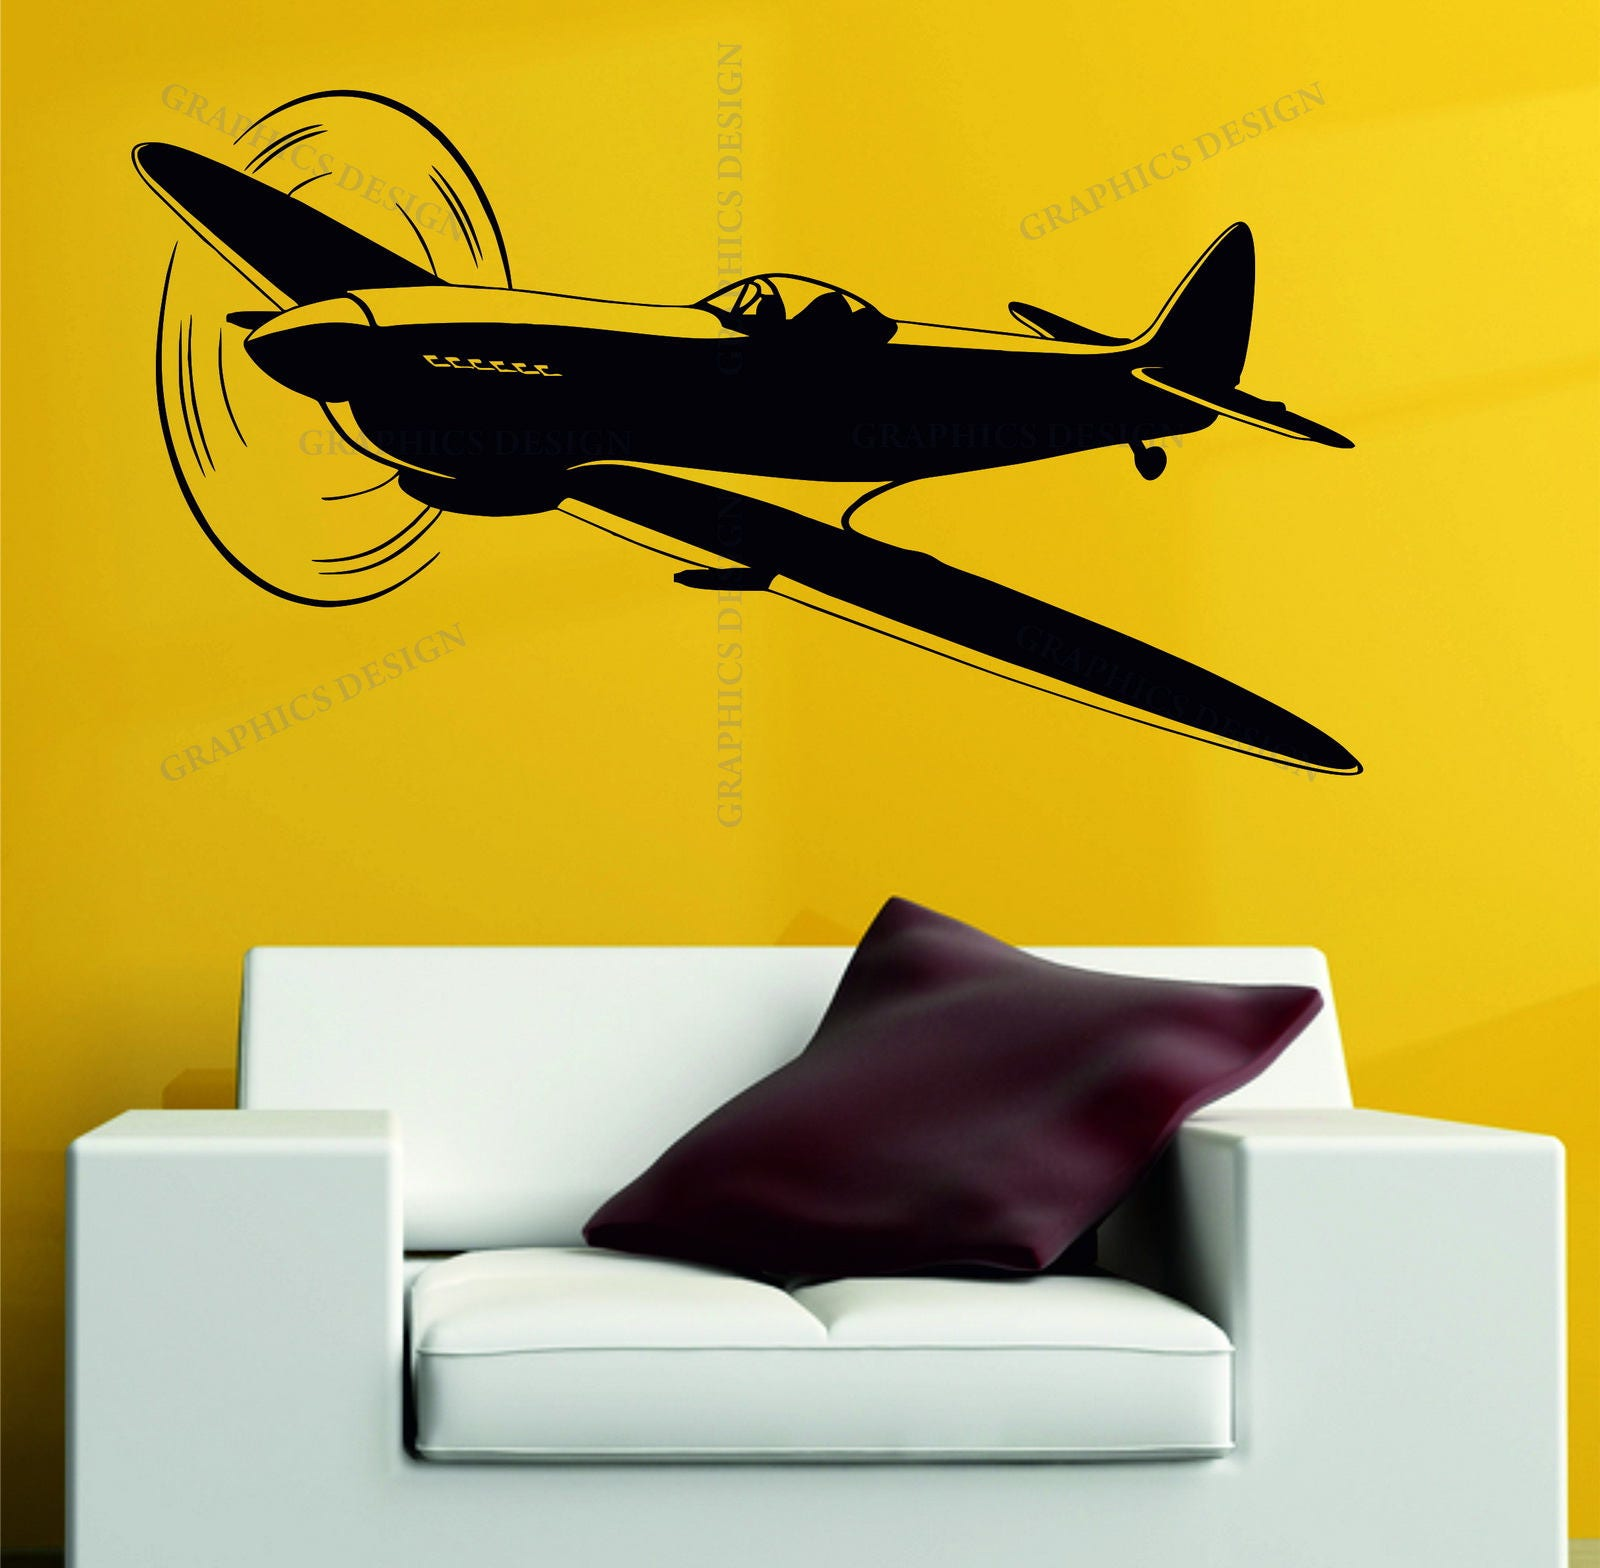 Cool Statements 2000 Wall Art Gallery - Wall Art Ideas - dochista.info